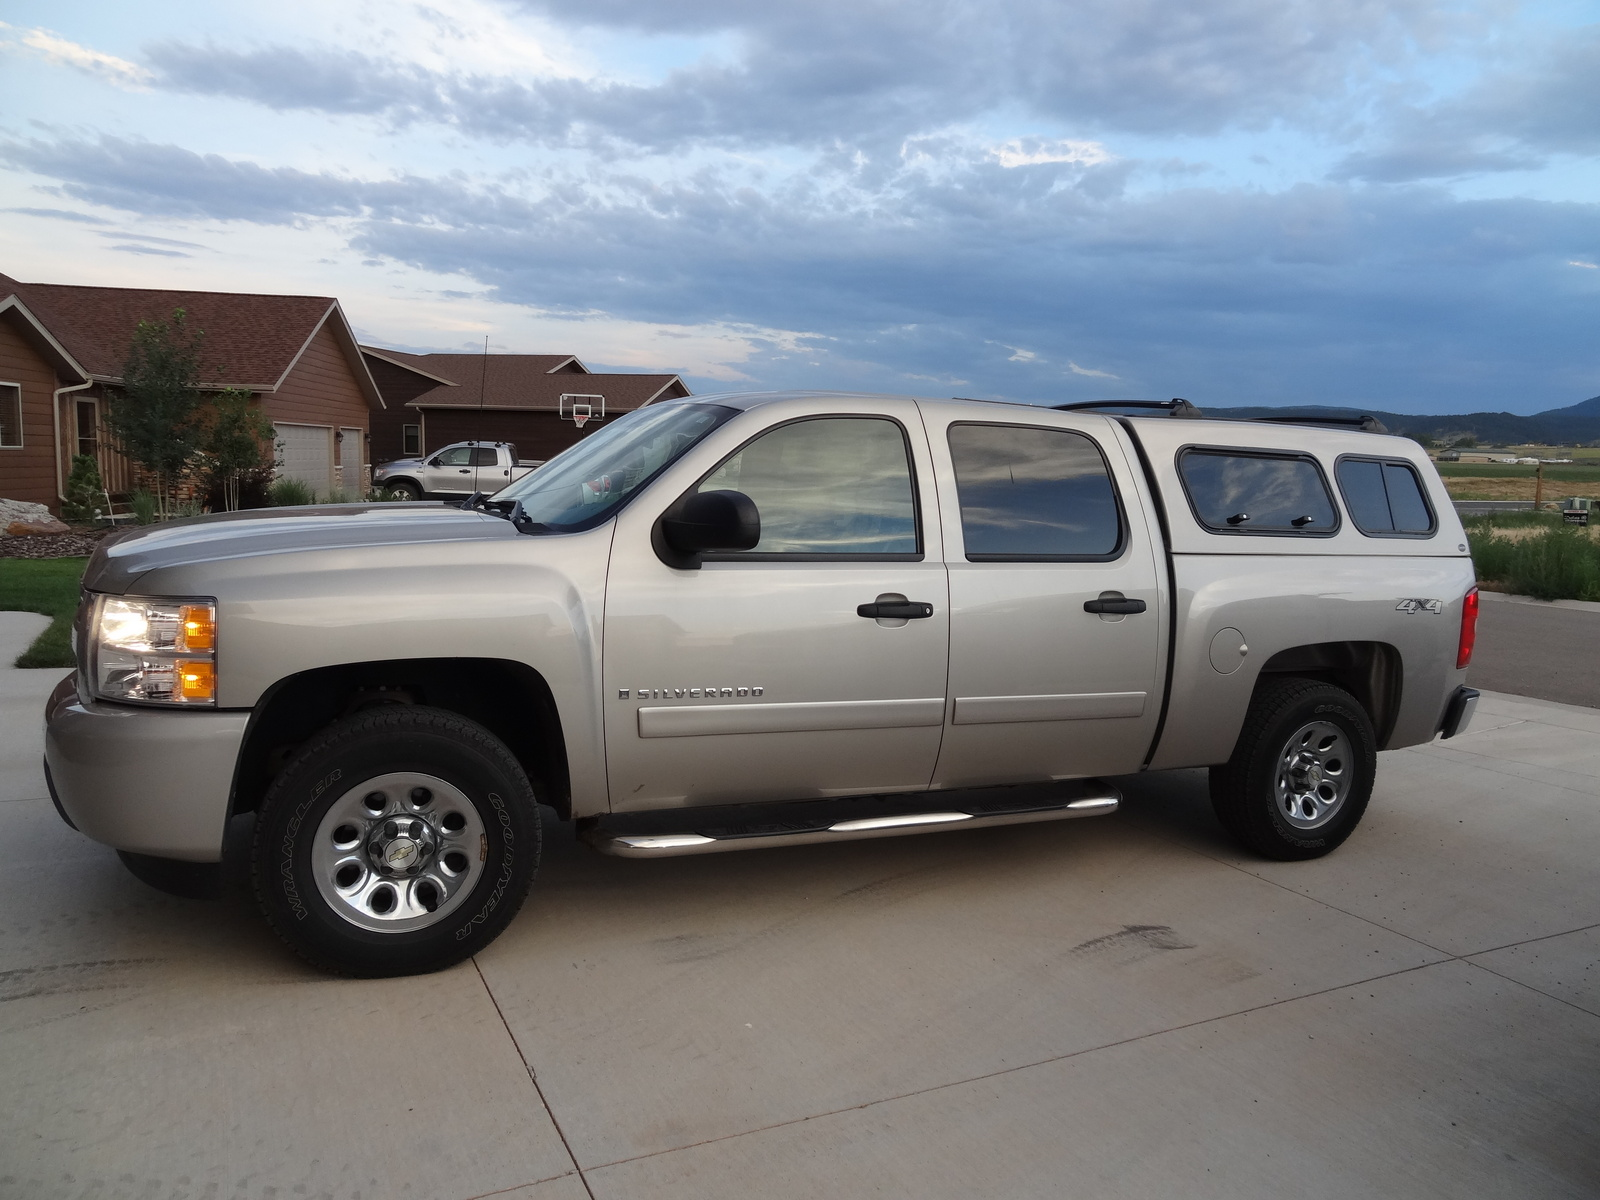 2008 chevrolet silverado 1500 crew cab 4wd reviews html autos weblog. Black Bedroom Furniture Sets. Home Design Ideas